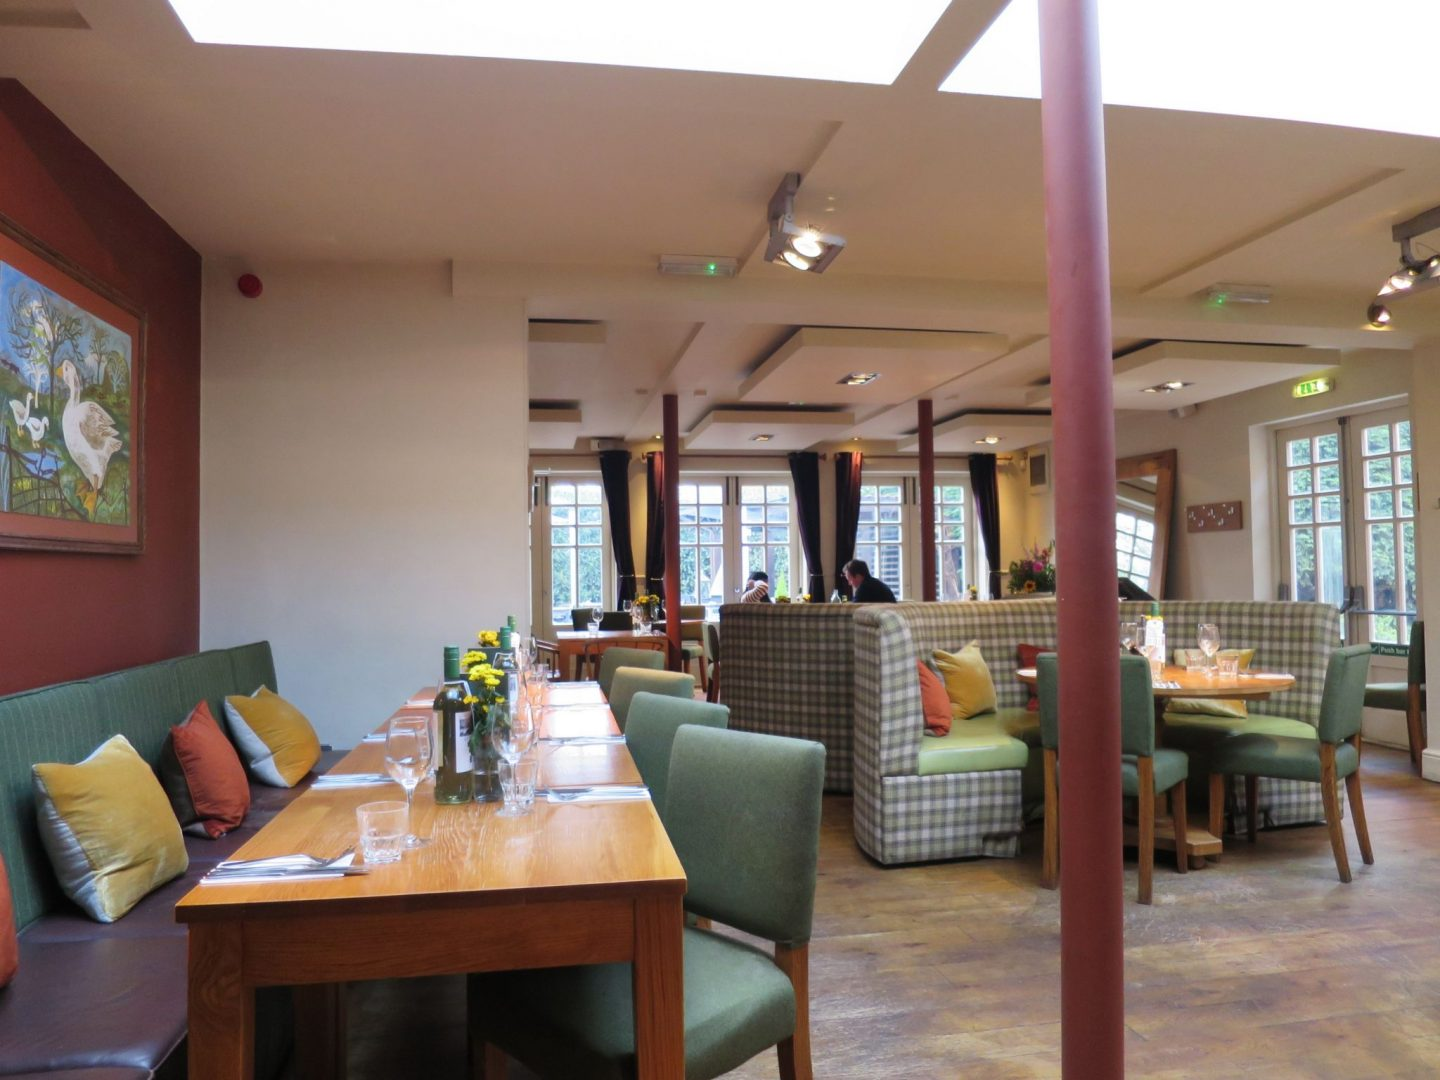 The Swan at Salford - Review